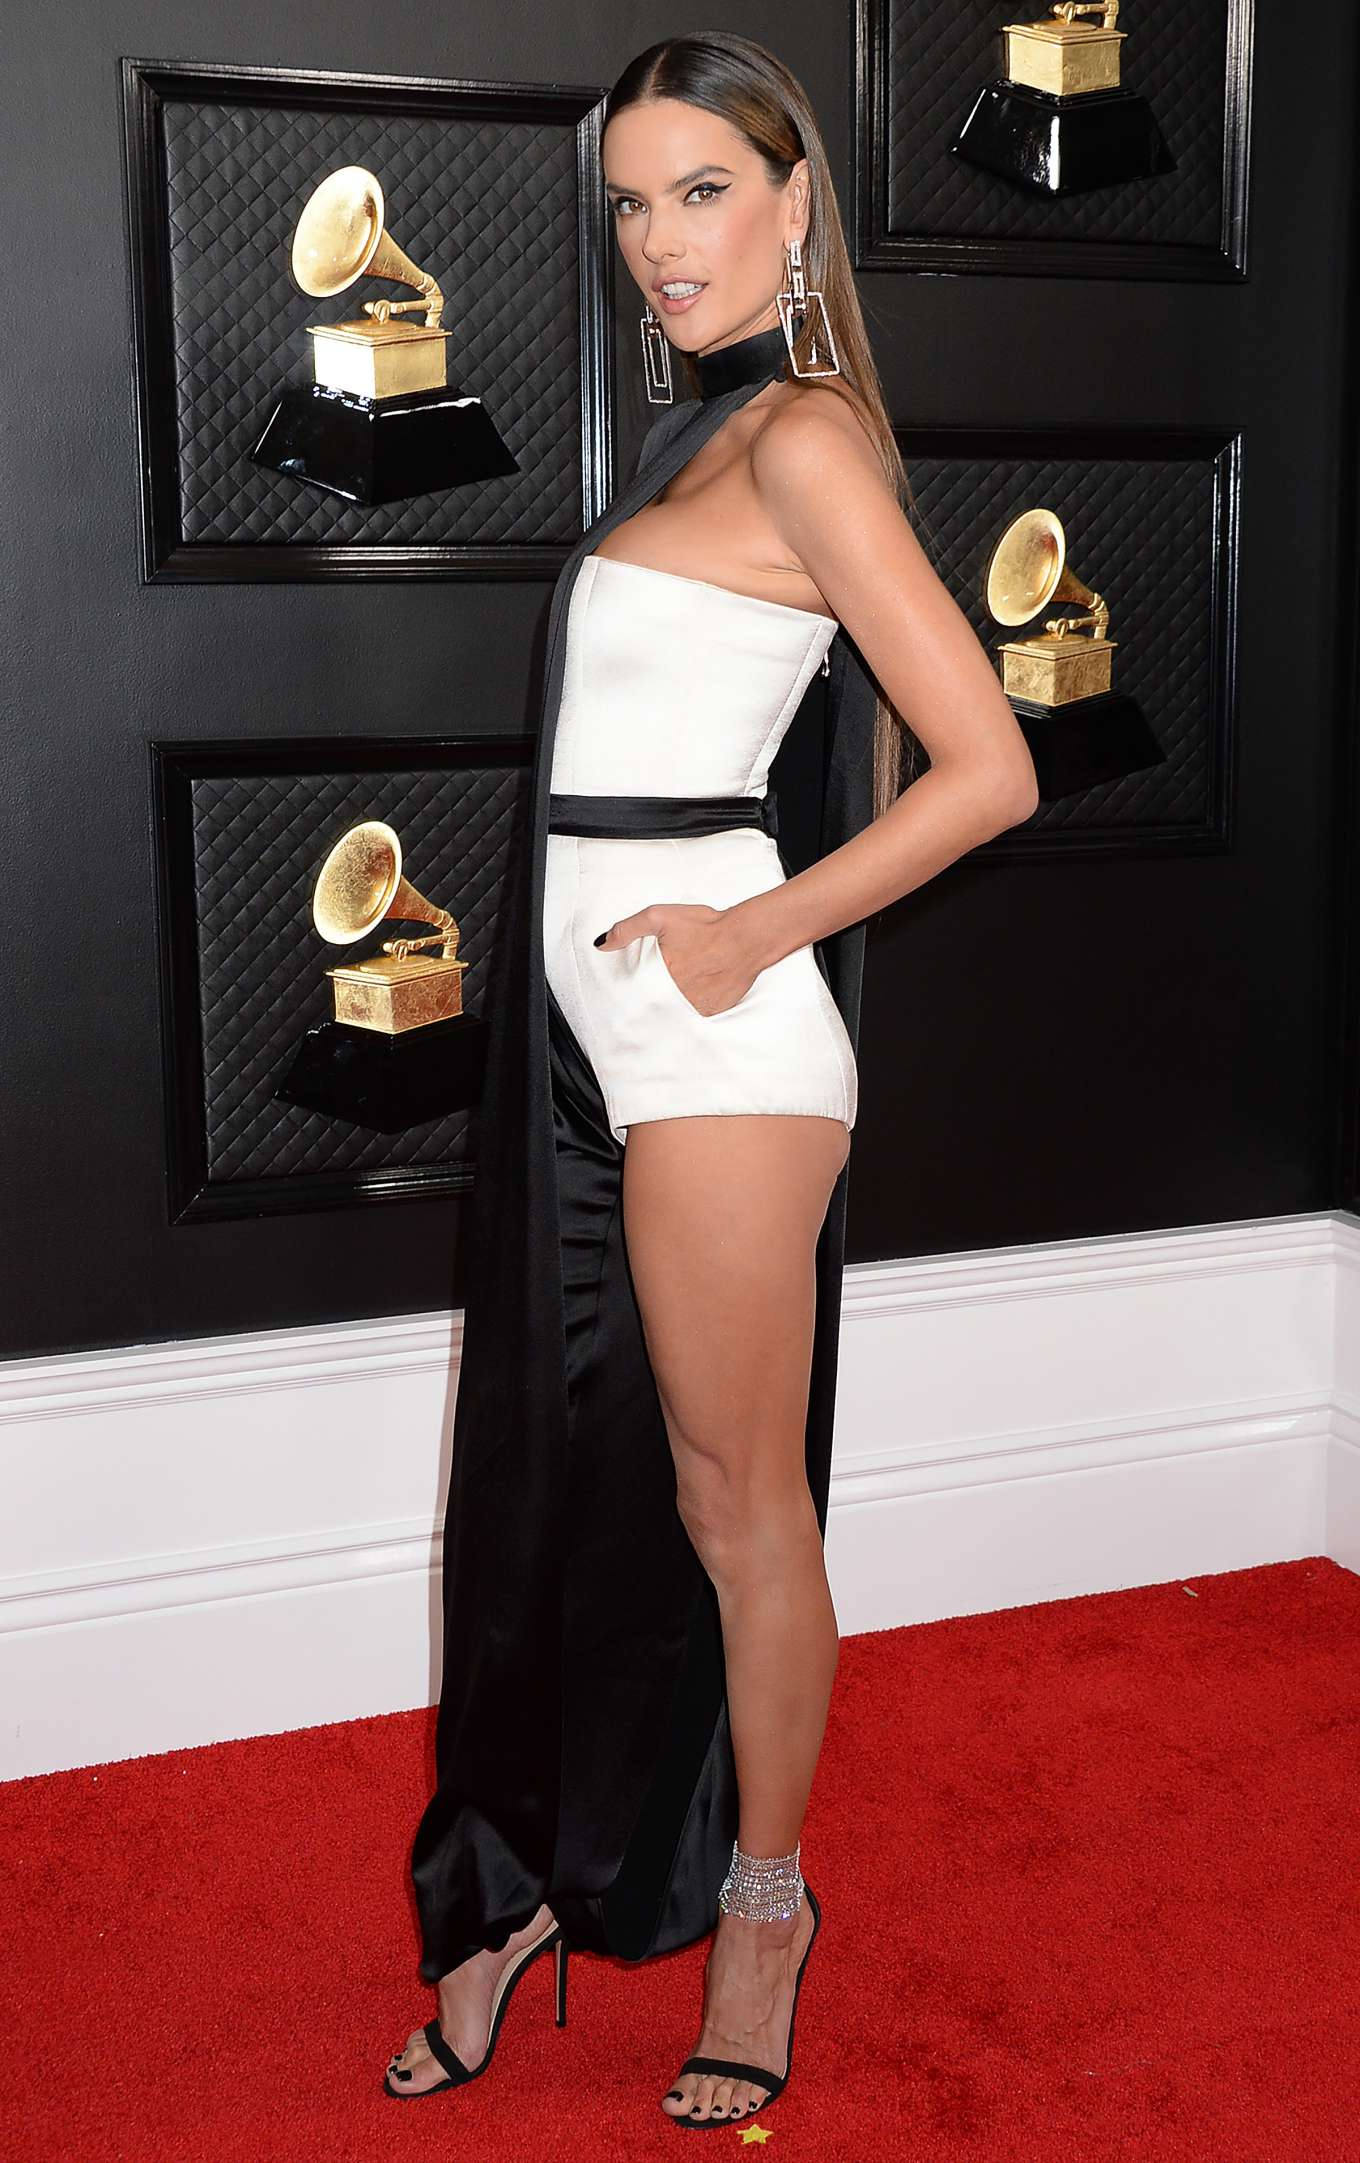 Alessandra Ambrosio - 62nd Annual Grammy Awards in Los Angeles